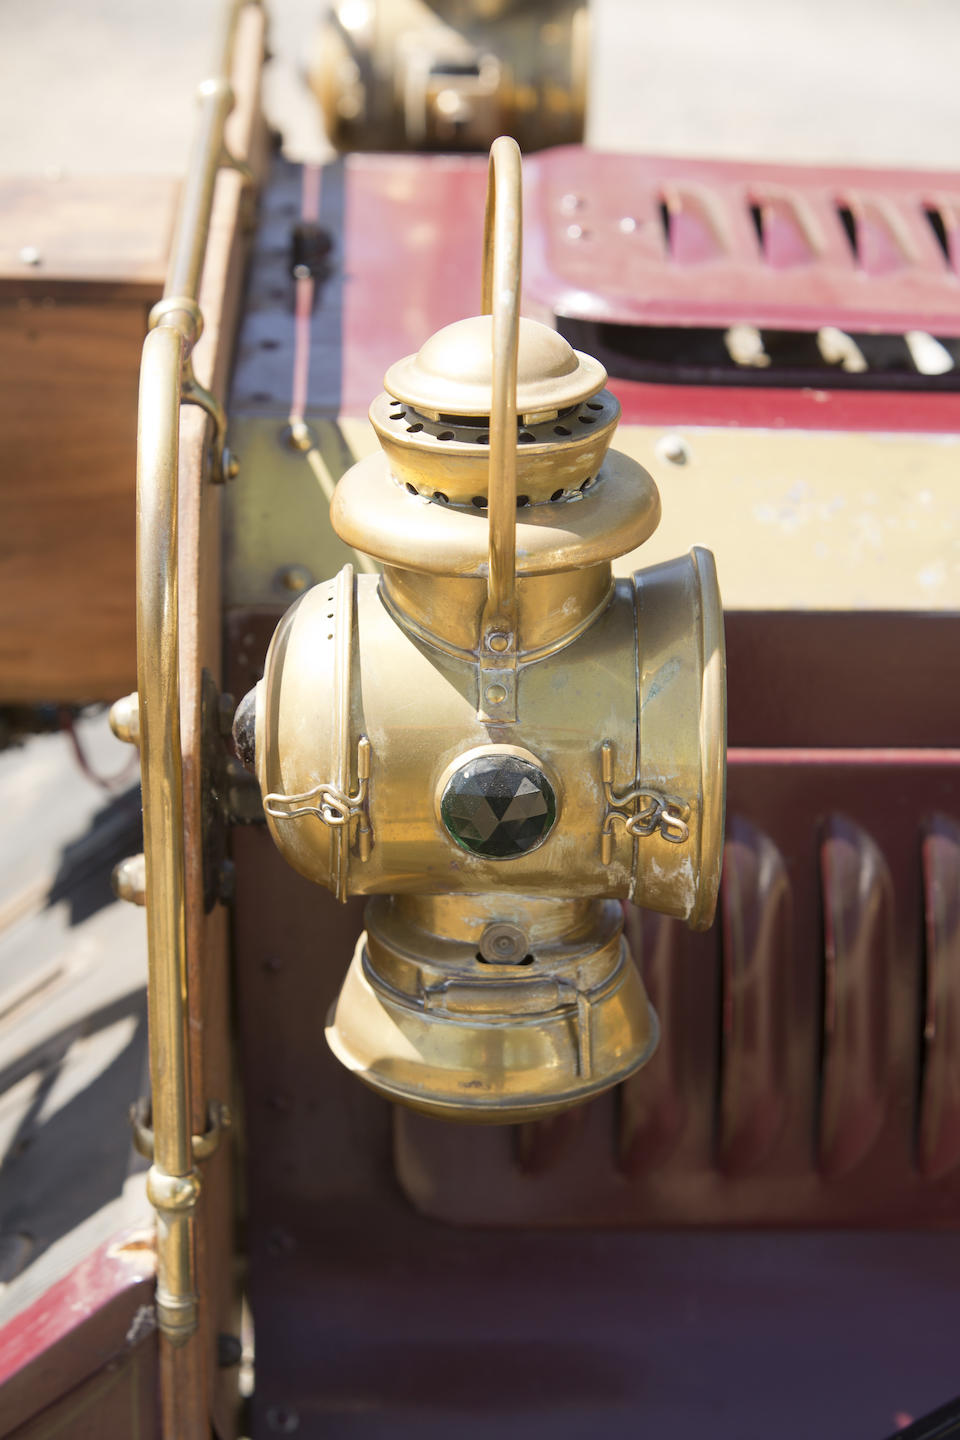 <i>From the Robert Ullrich Collection</i><br /><b>c.1905 REO RUNABOUT  </b><br />Chassis no. 3106